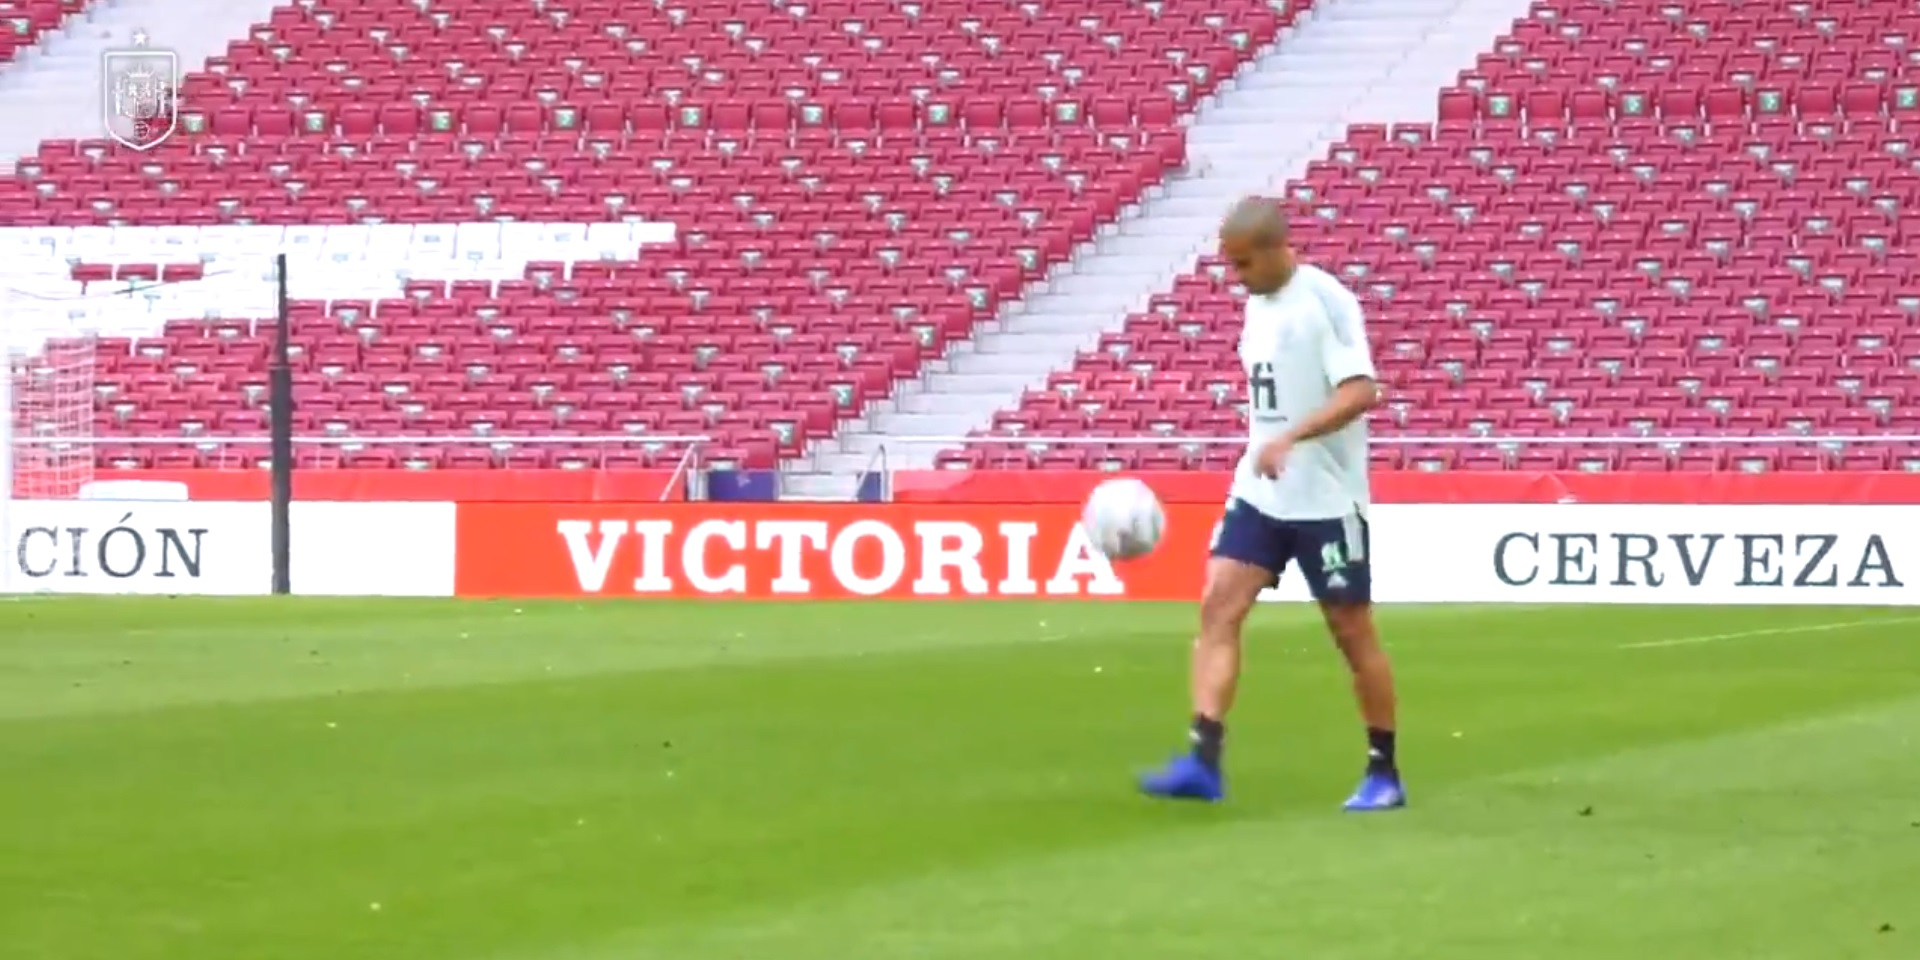 (Video) Thiago's volley passing warm-up with Rodri is mesmerising